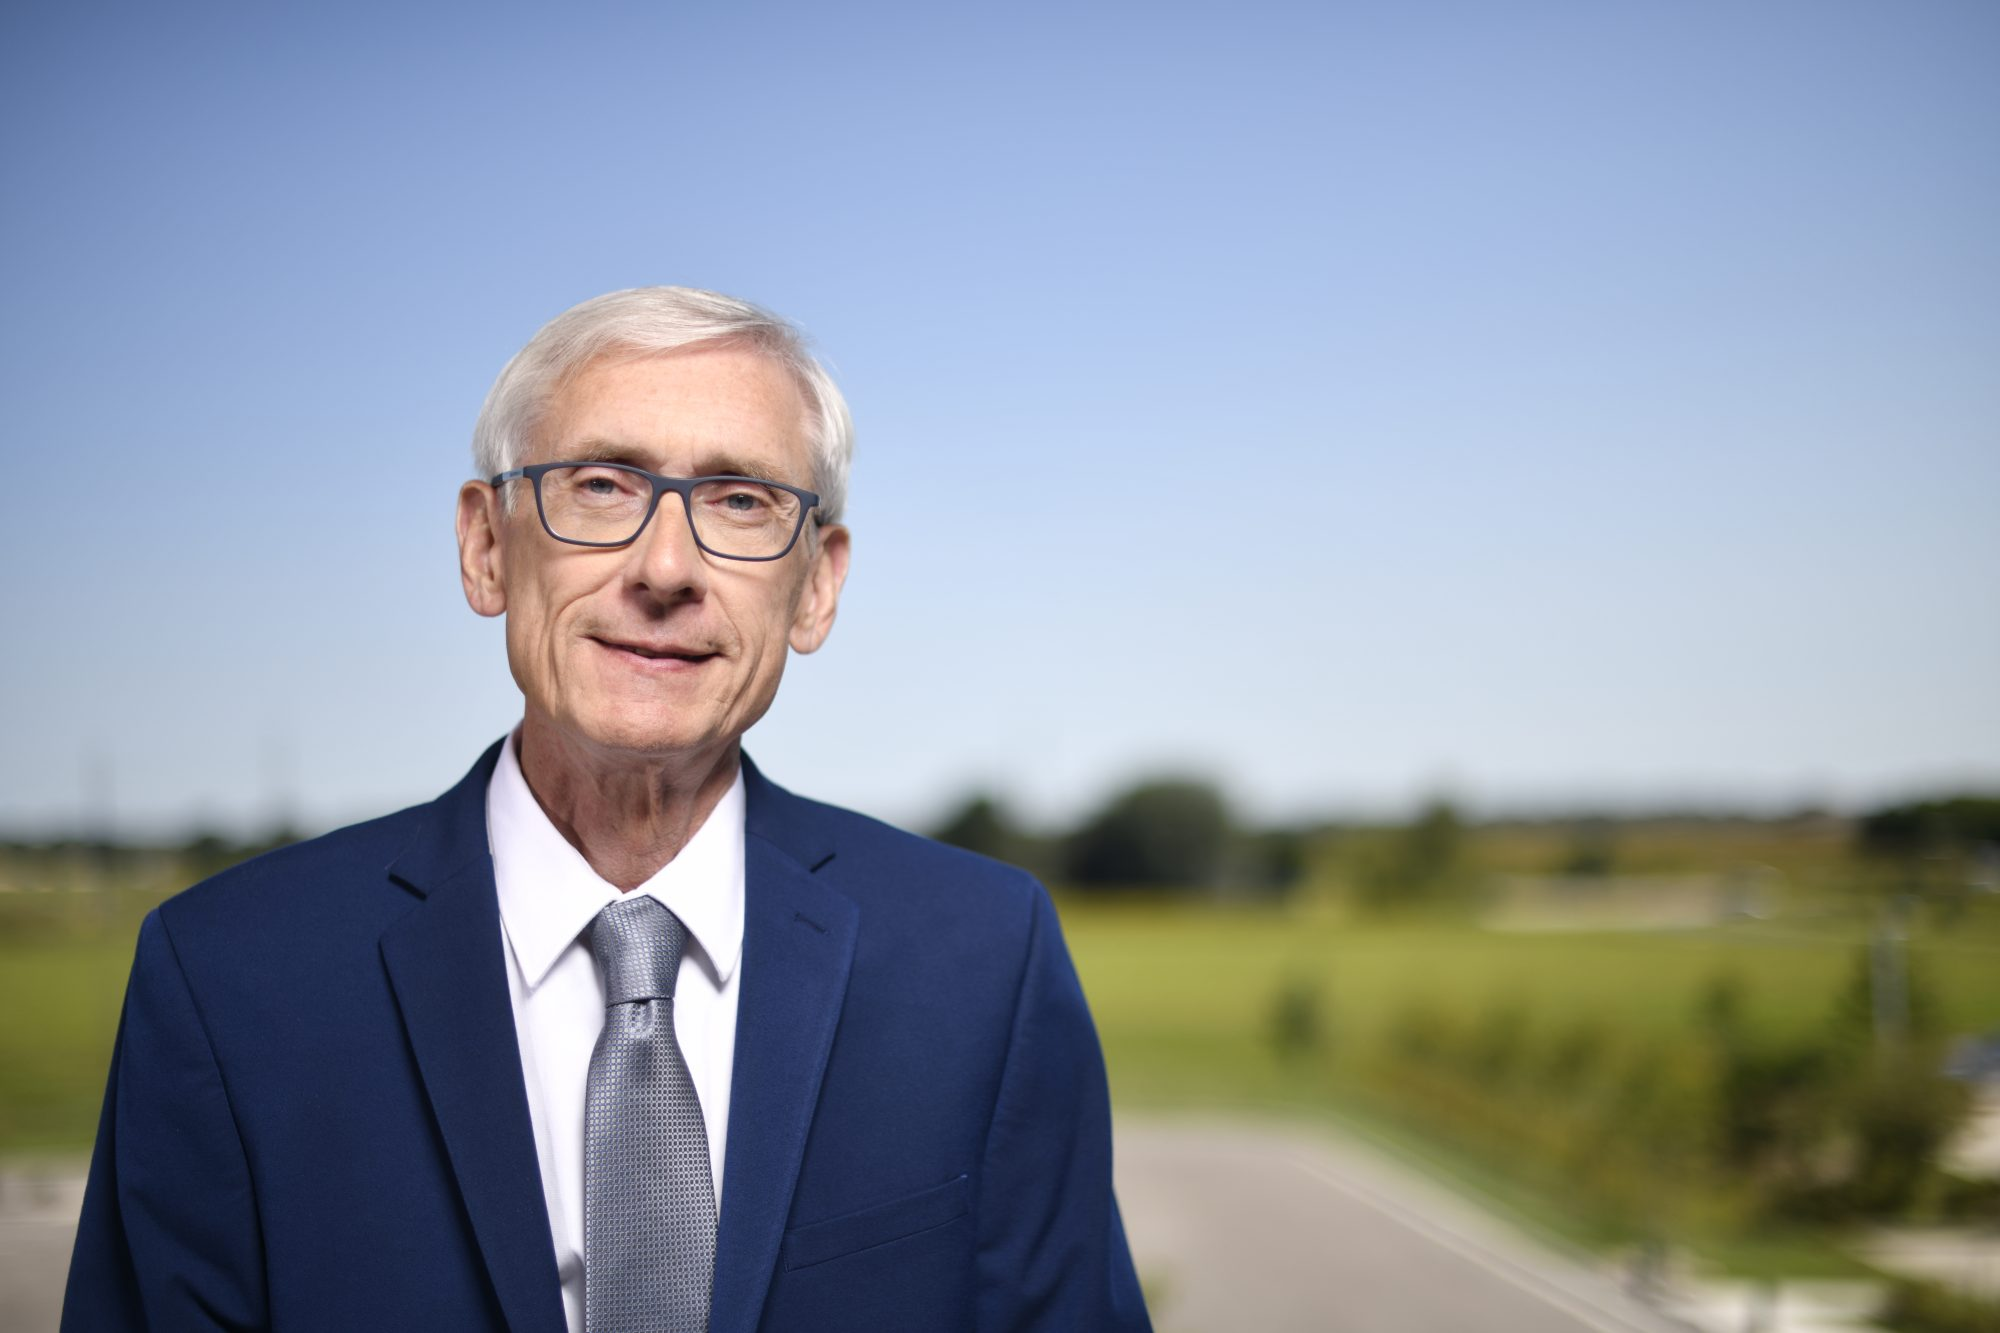 Gov. Evers Announces Award of $2 Million of Community Development Block Grant-CLOSE Funds to Racine County